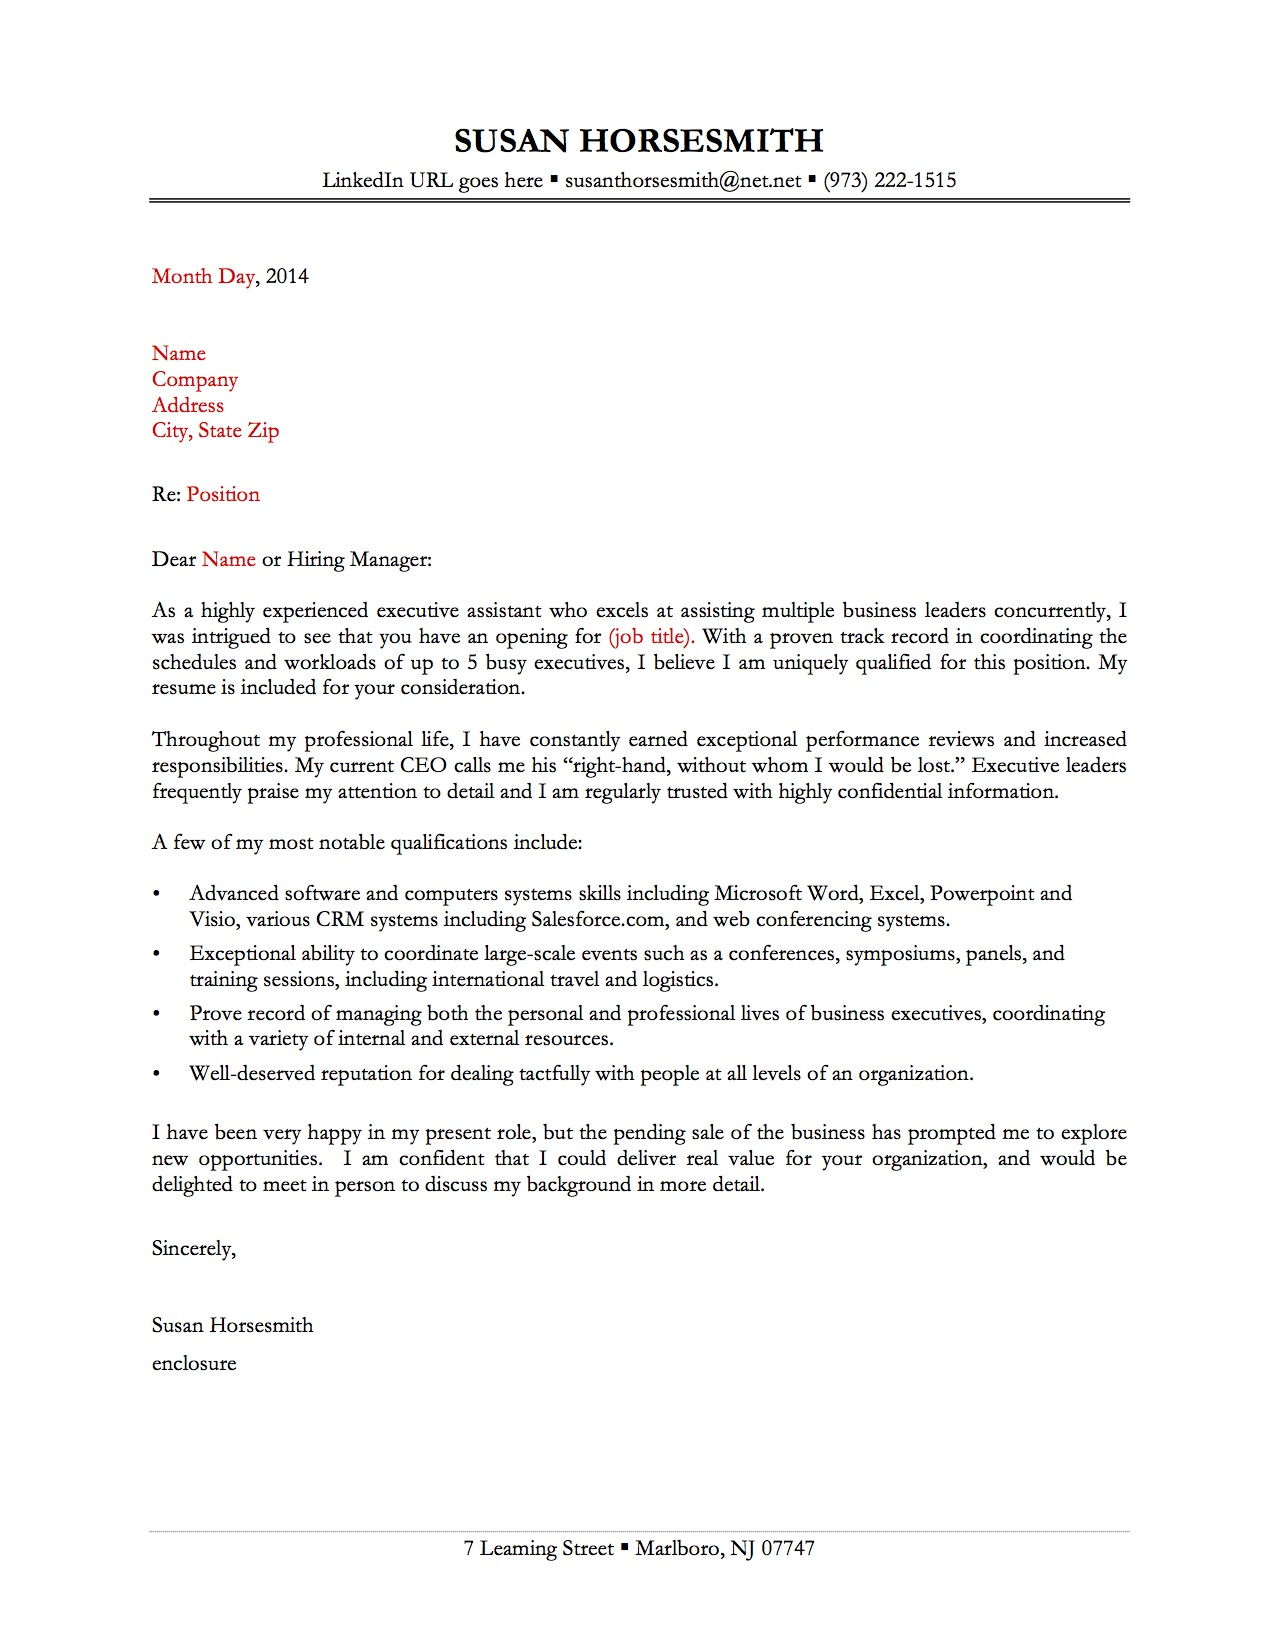 sample cover letter 1 - Great Job Cover Letters